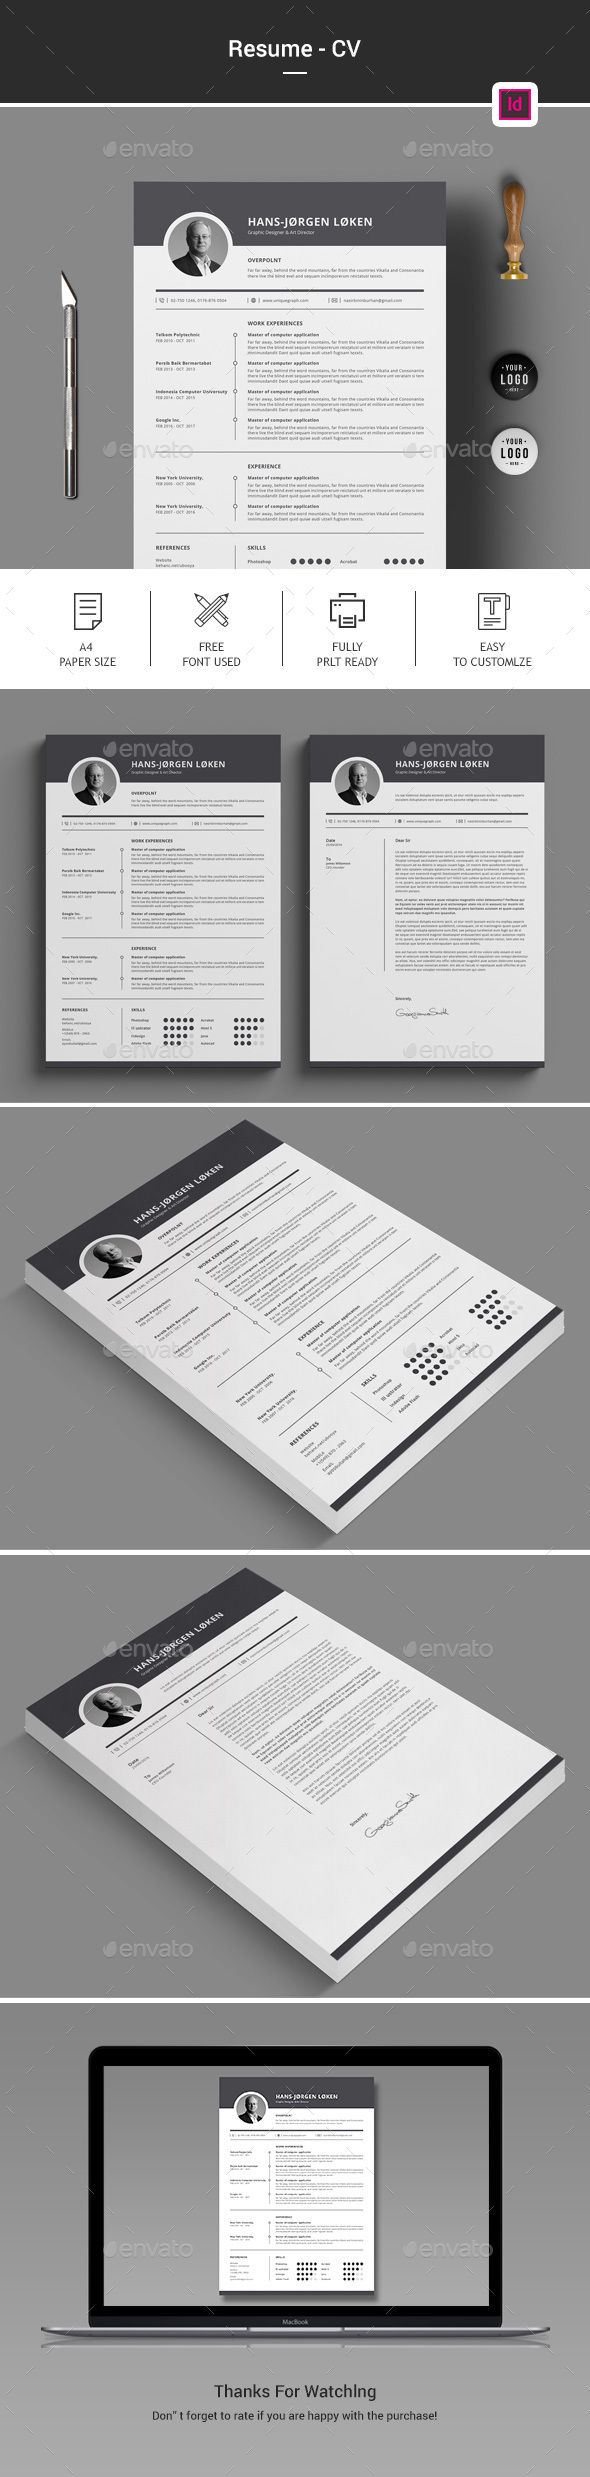 CV Stationery Print Templates Download here